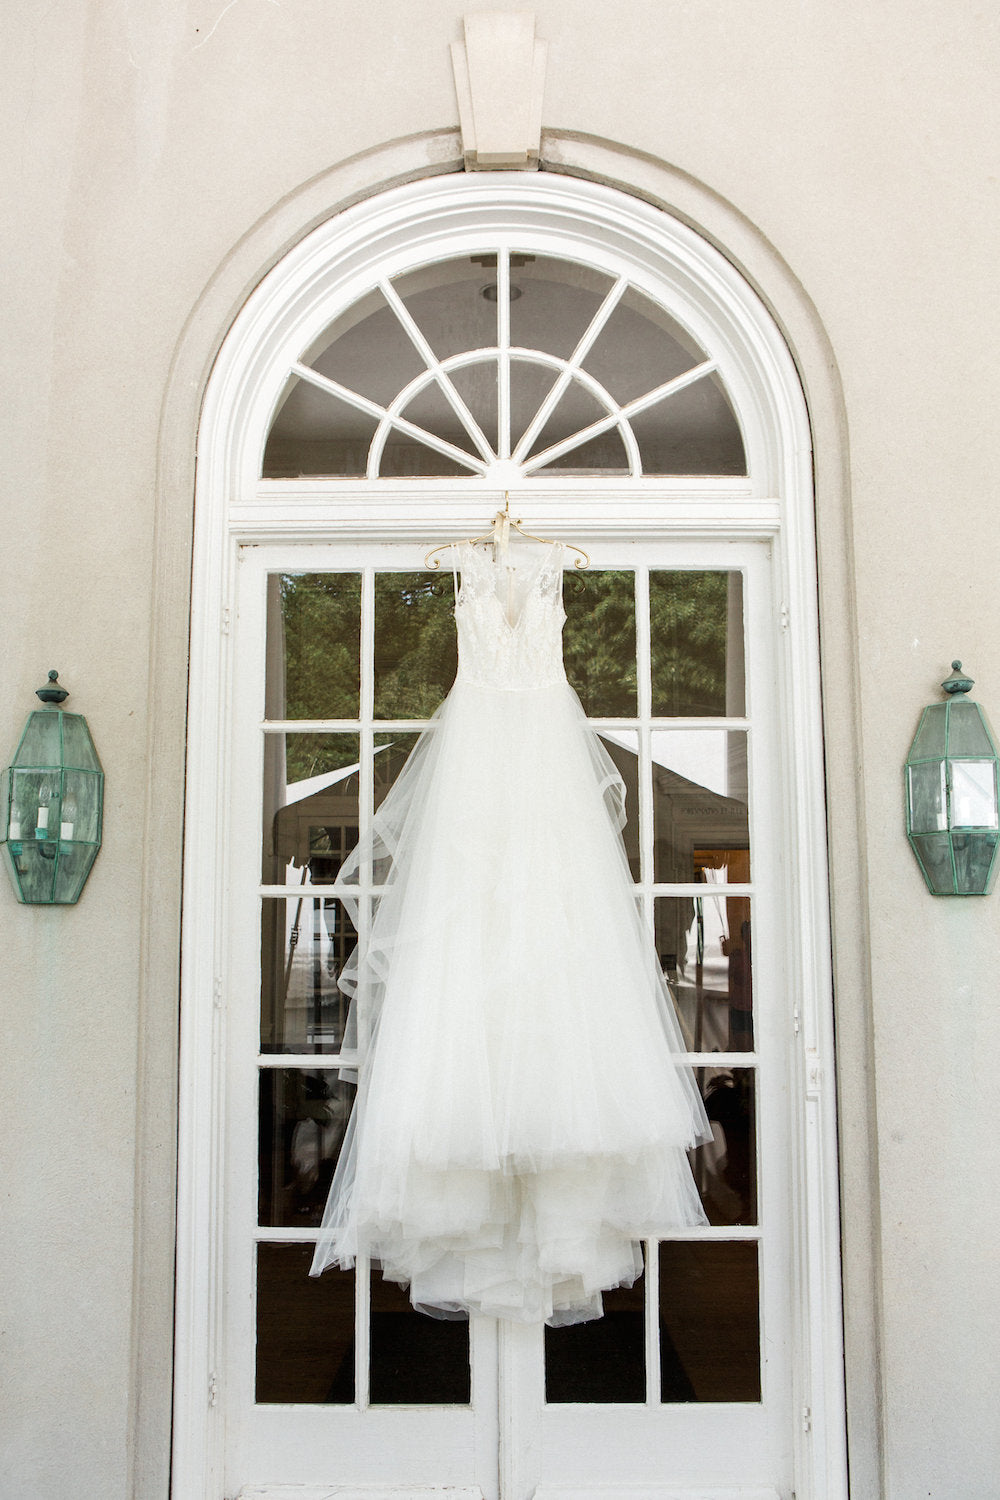 hanging wedding dress - tips about trying wedding dresses on at home from The Garter Girl